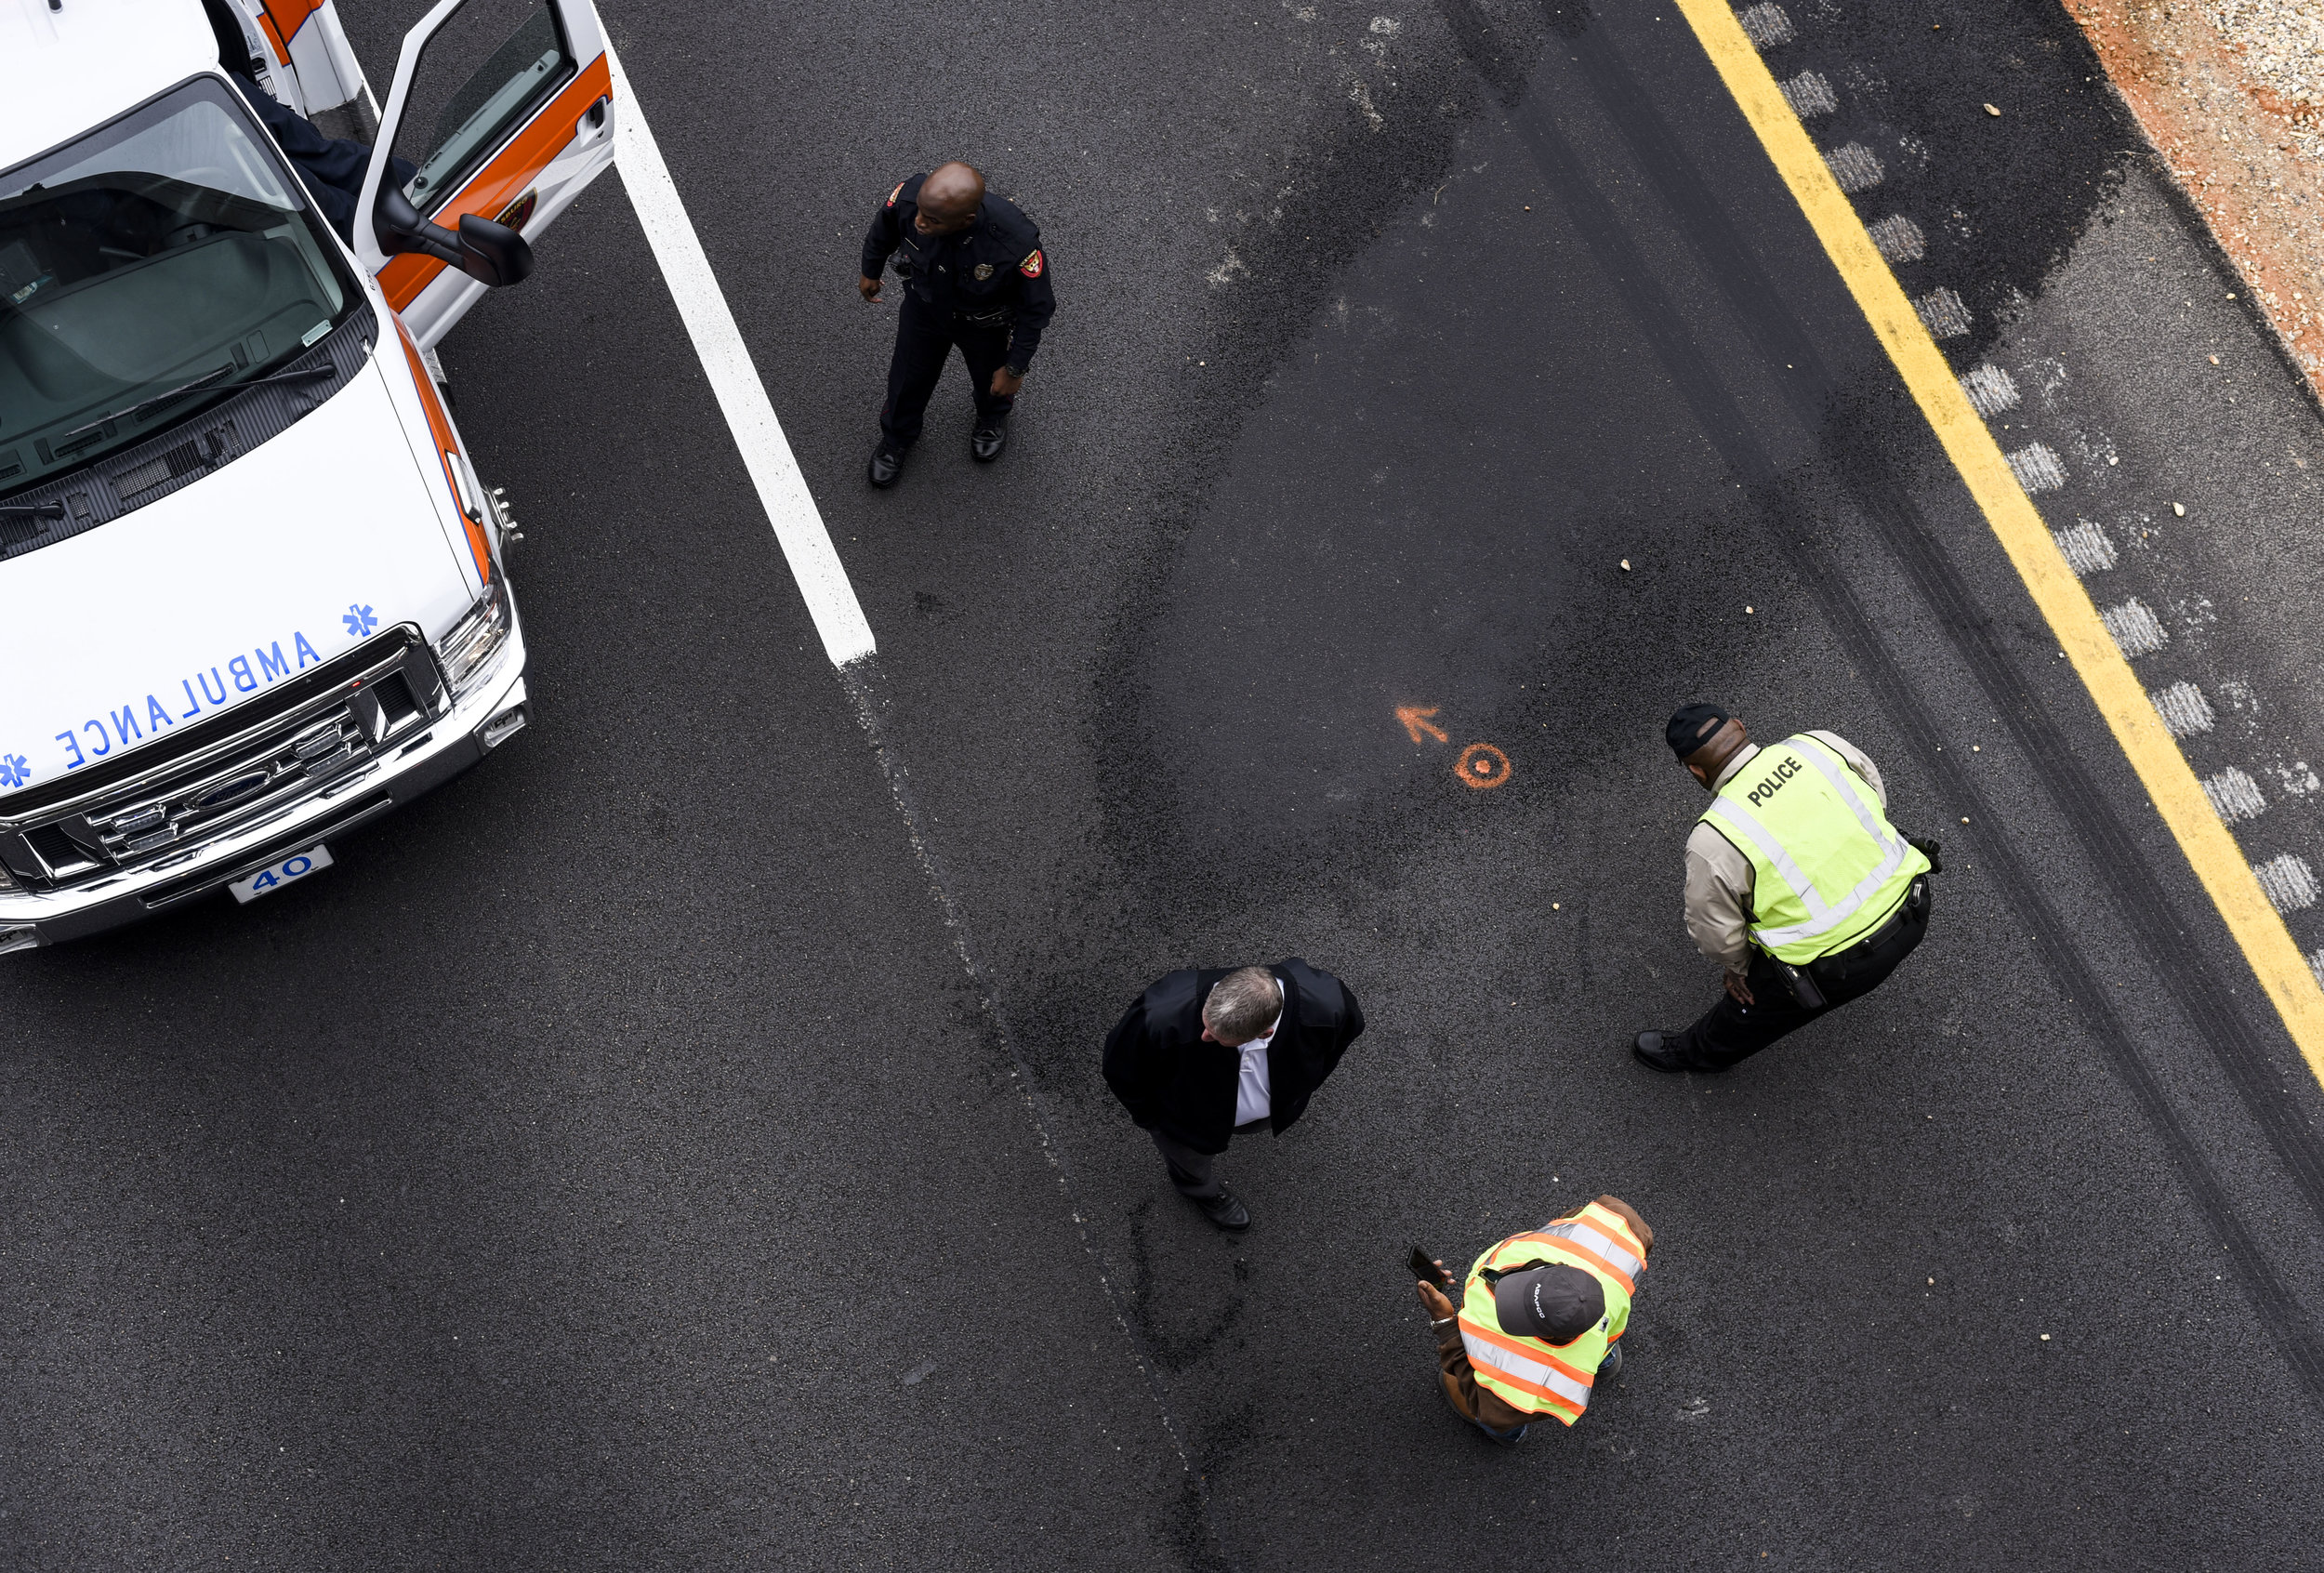 Vicksburg first responders inspect the site of where 29-year-old Jeffery Casper jumped from the Halls Ferry bridge onto Interstate 20 East at 10:37 a.m. on Wednesday morning, Dec. 21, 2016 in Vicksburg, Miss. Casper was transported by ambulance to Merit Health River Region where he then died from his injuries.